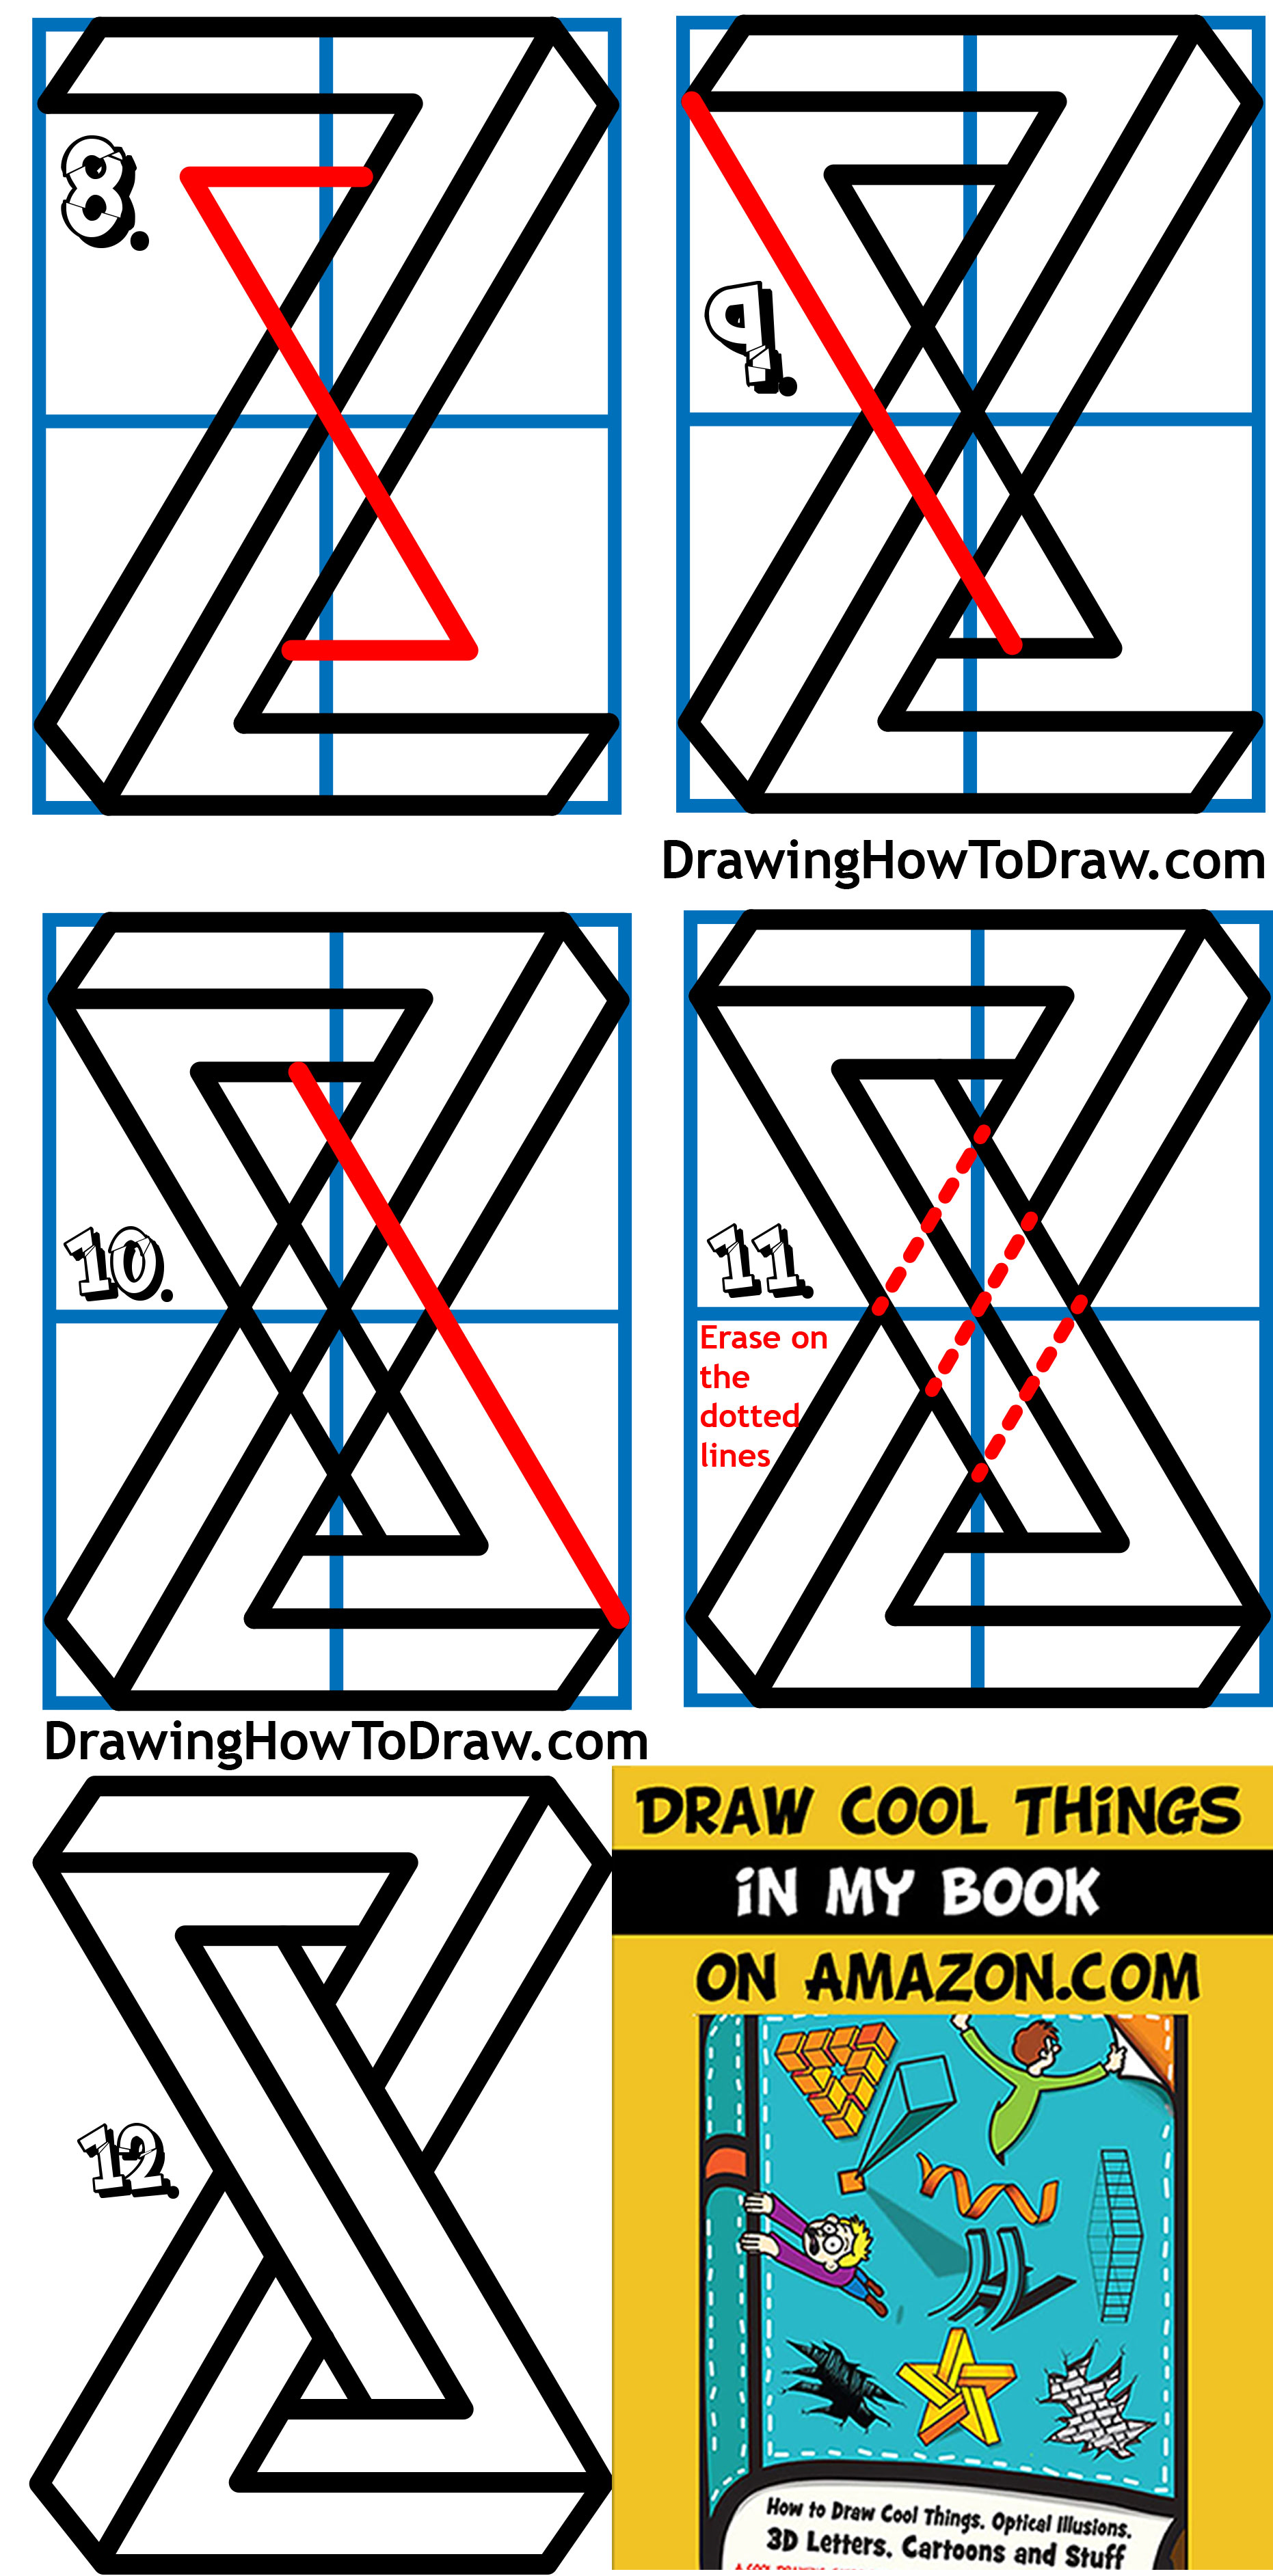 Learn How to Draw an Impossible Shape - Simple Steps Drawing Lesson for Kids & Beginners